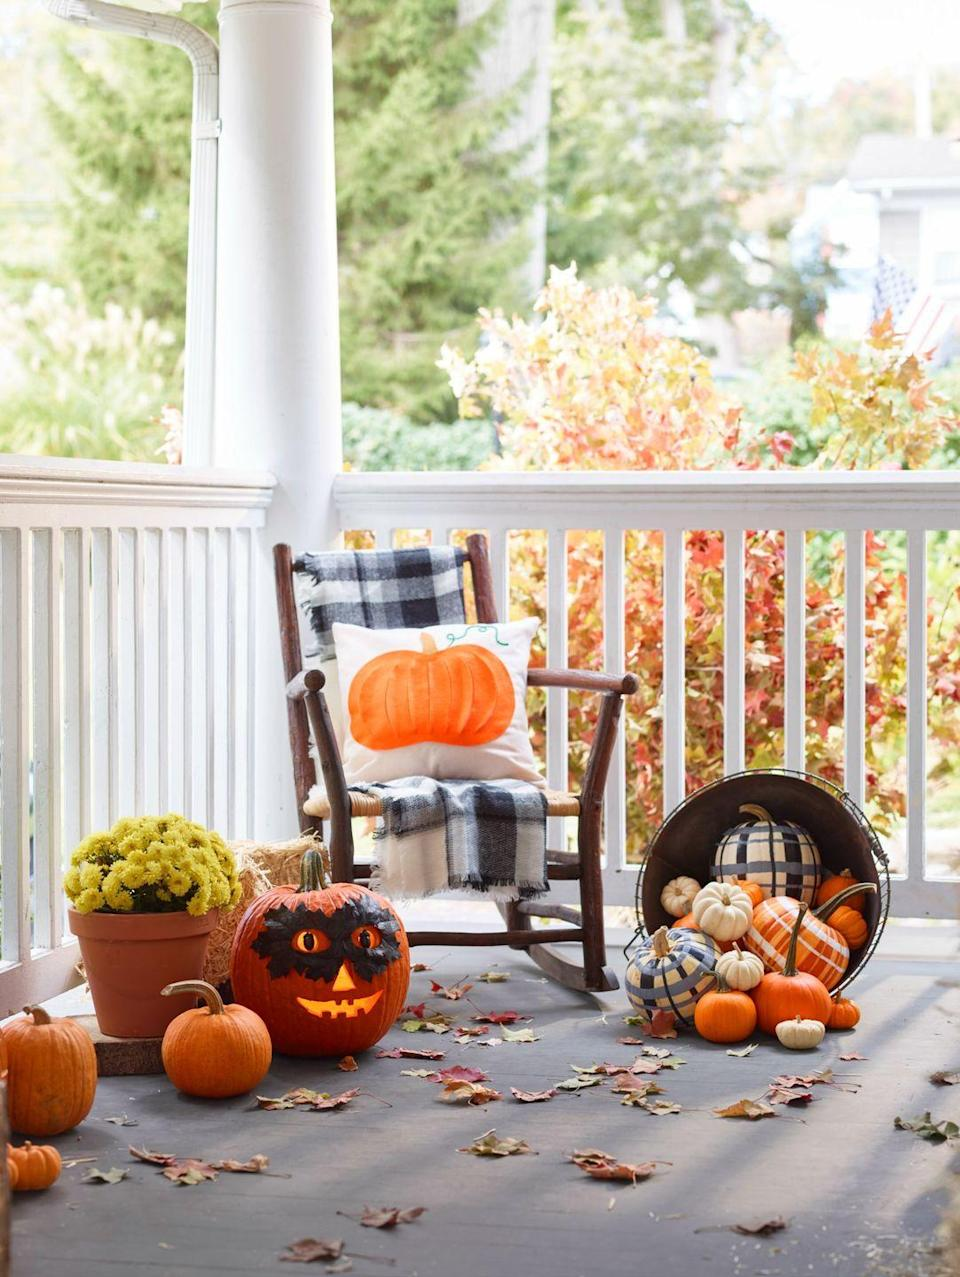 """<p>Paint fall's favorite pattern onto any smooth gourd. For the best effect, choose two or three colors and add fine lines between the thick ones. (Like the pumpkin on the right? Fashion real or artificial leaves into a quick disguise for a classic Jack-O'-Lantern.) </p><p><strong>What You'll Need:</strong> <a href=""""https://www.amazon.com/Zenacolor-Acrylic-Painting-Supplies-Children/dp/B07PPTRFPL/ref=sr_1_1_sspa?dchild=1&keywords=acrylic+paint&qid=1594916836&sr=8-1-spons&psc=1&spLa=ZW5jcnlwdGVkUXVhbGlmaWVyPUEzQUFPMVA4NkZTMENSJmVuY3J5cHRlZElkPUEwODgzMjkzMzBZTkFDRVdYQkQ5UyZlbmNyeXB0ZWRBZElkPUEwNTQ1Nzg1M0ZOUklUQVdQUTZWSyZ3aWRnZXROYW1lPXNwX2F0ZiZhY3Rpb249Y2xpY2tSZWRpcmVjdCZkb05vdExvZ0NsaWNrPXRydWU%3D&tag=syn-yahoo-20&ascsubtag=%5Bartid%7C10070.g.1279%5Bsrc%7Cyahoo-us"""" rel=""""nofollow noopener"""" target=""""_blank"""" data-ylk=""""slk:Acrylic paint"""" class=""""link rapid-noclick-resp"""">Acrylic paint</a> ($30, Amazon)</p>"""